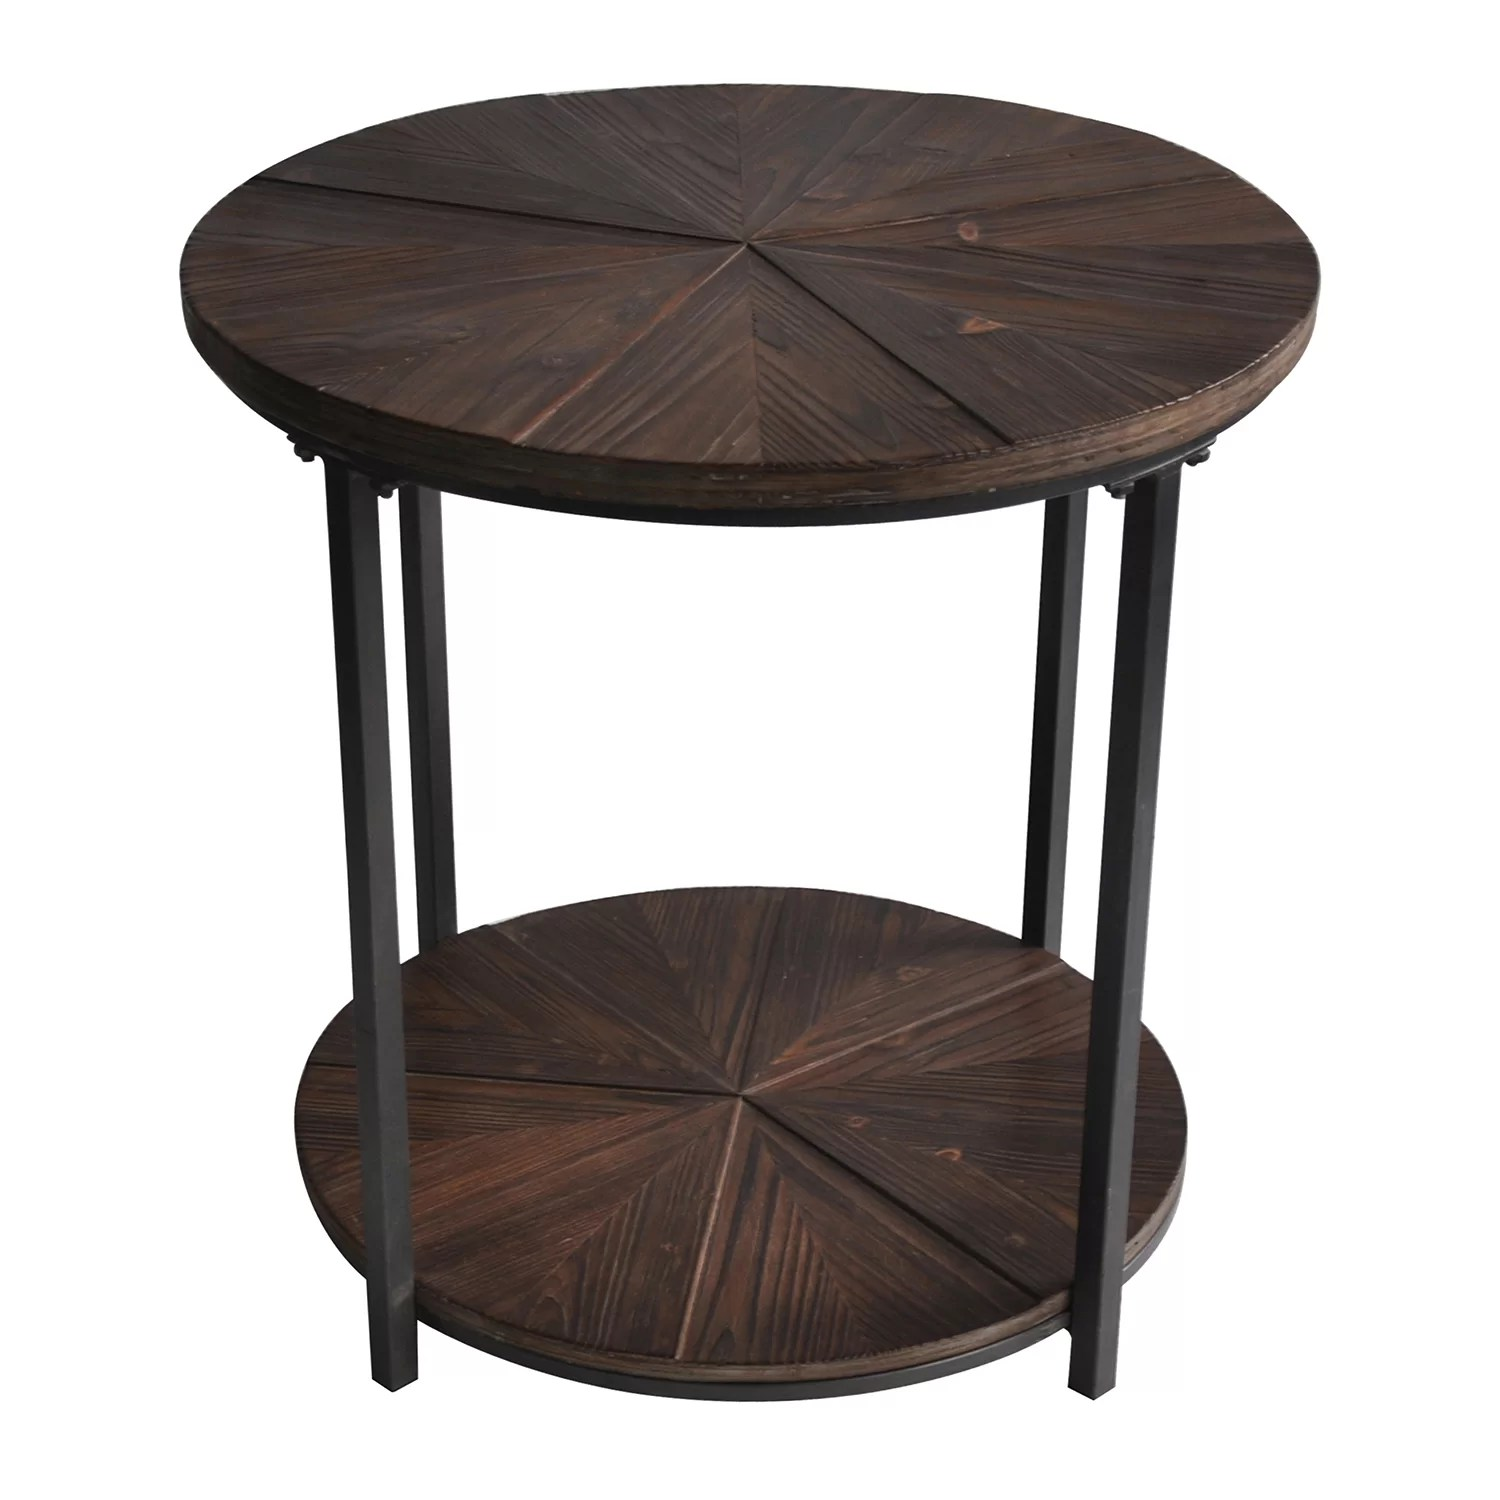 Rustic Wood End Table Gallien Round Metal And Rustic Wood End Table